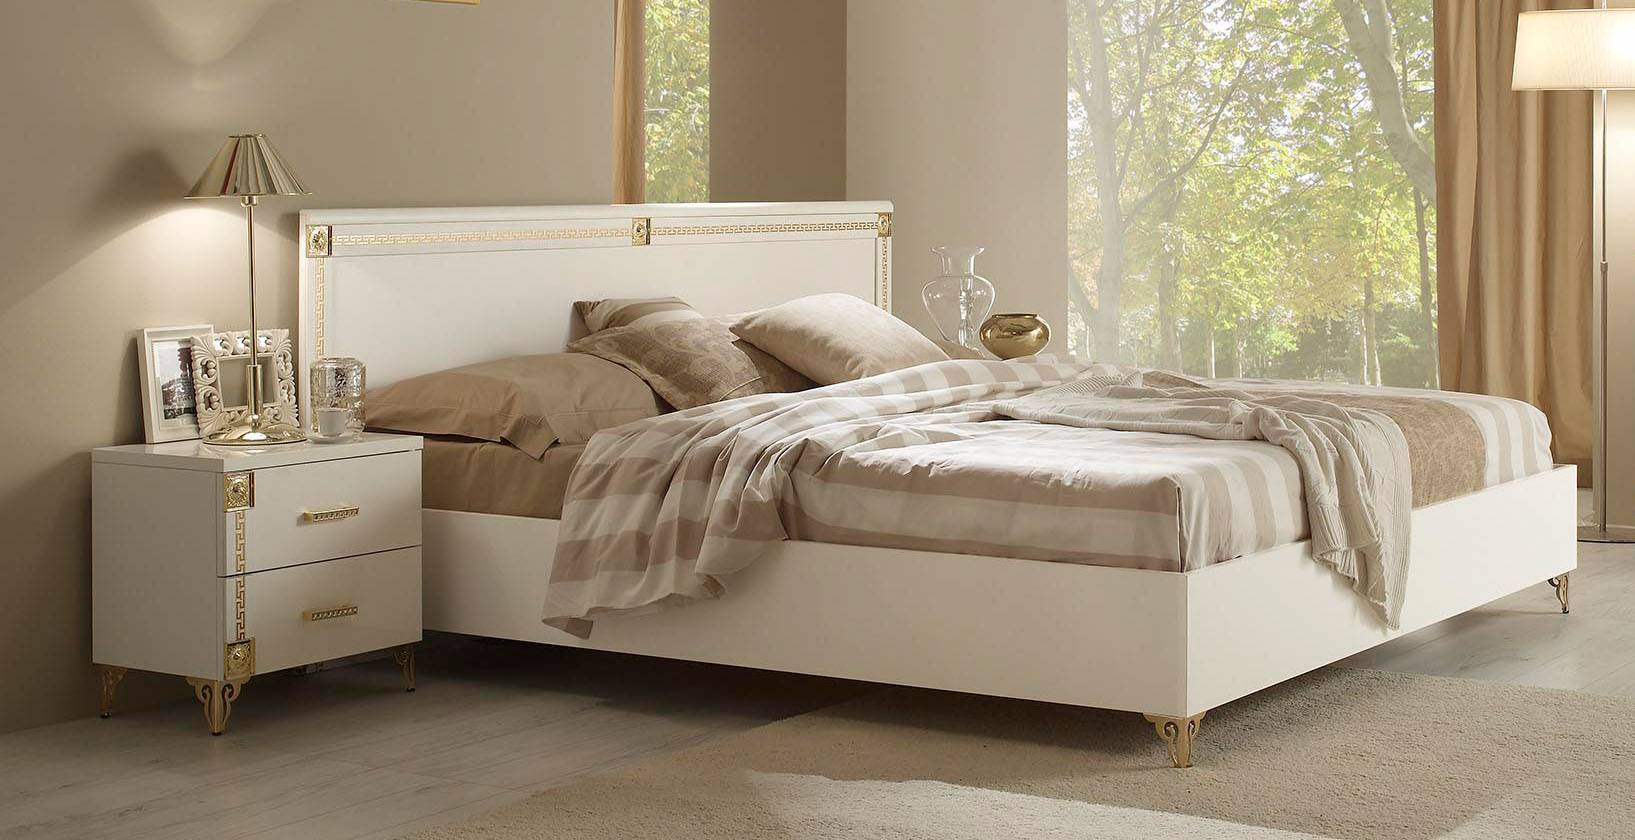 made in italy quality luxury modern furniture set with golden color tucson arizona esf venice - Luxury Bedroom Furniture